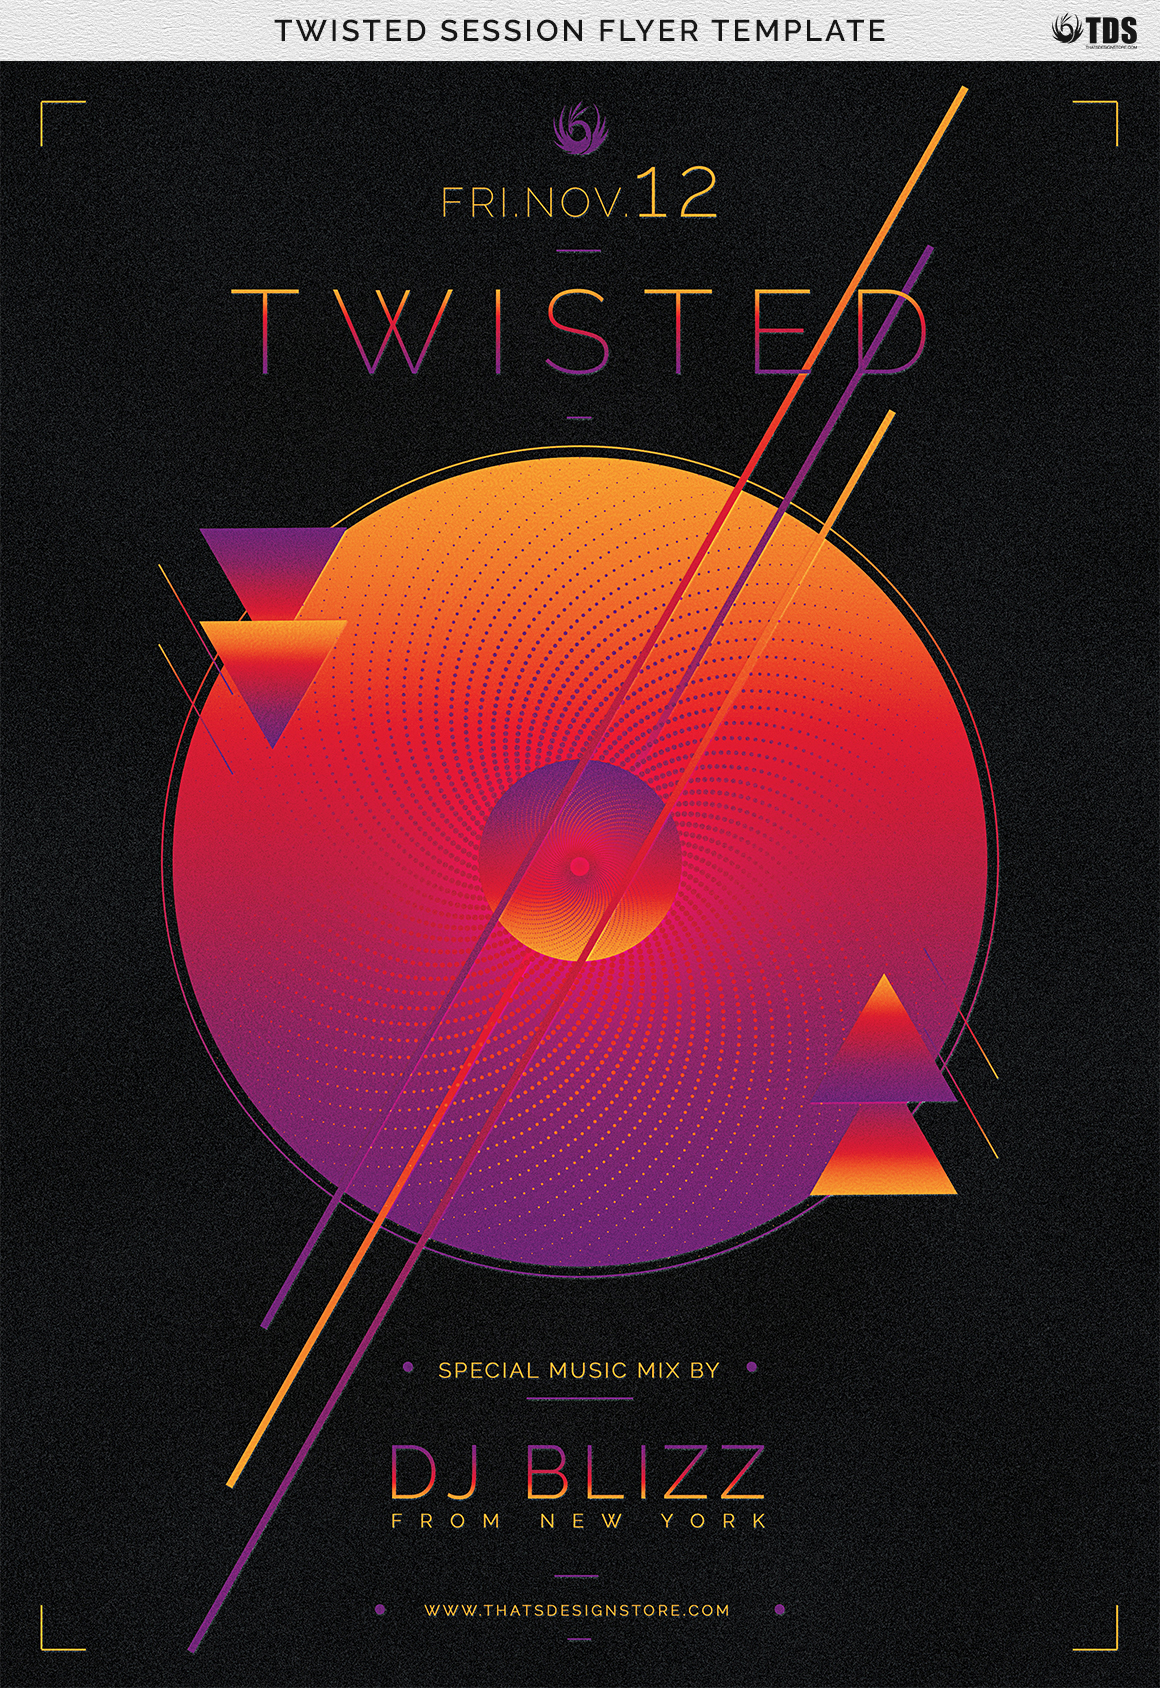 Twisted Session Flyer Template example image 12